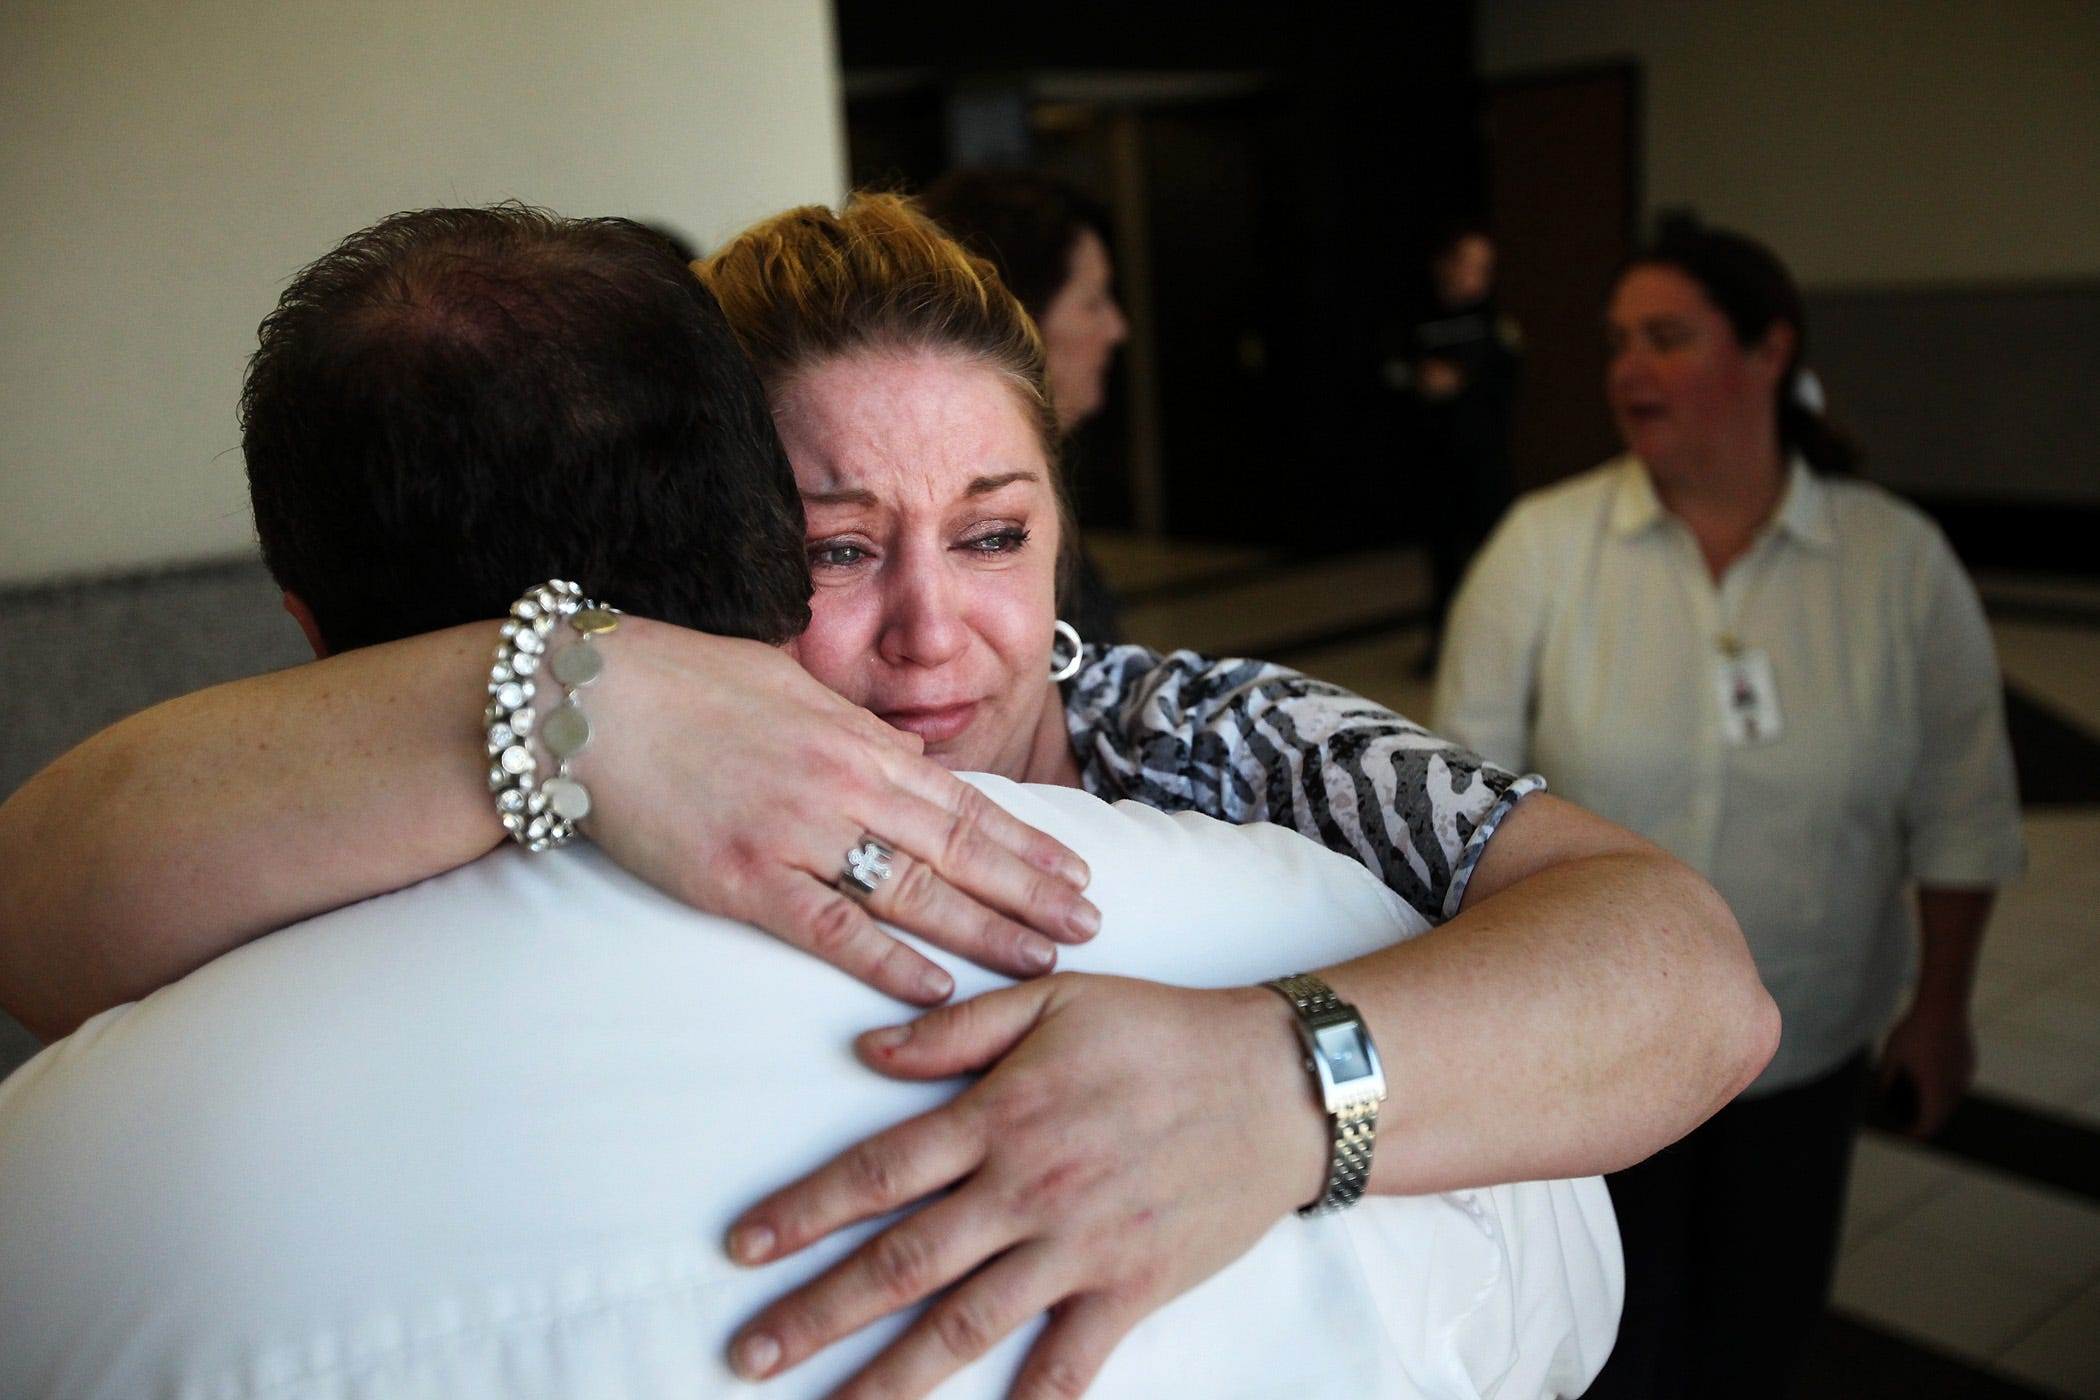 Robert Harrison's sister, Dawn Harrison, hugs a detective after Daniel Alexander was found guilty Jan. 11, 2011, of killing Robert Harrison during a fight at their Palm Beach Gardens home.